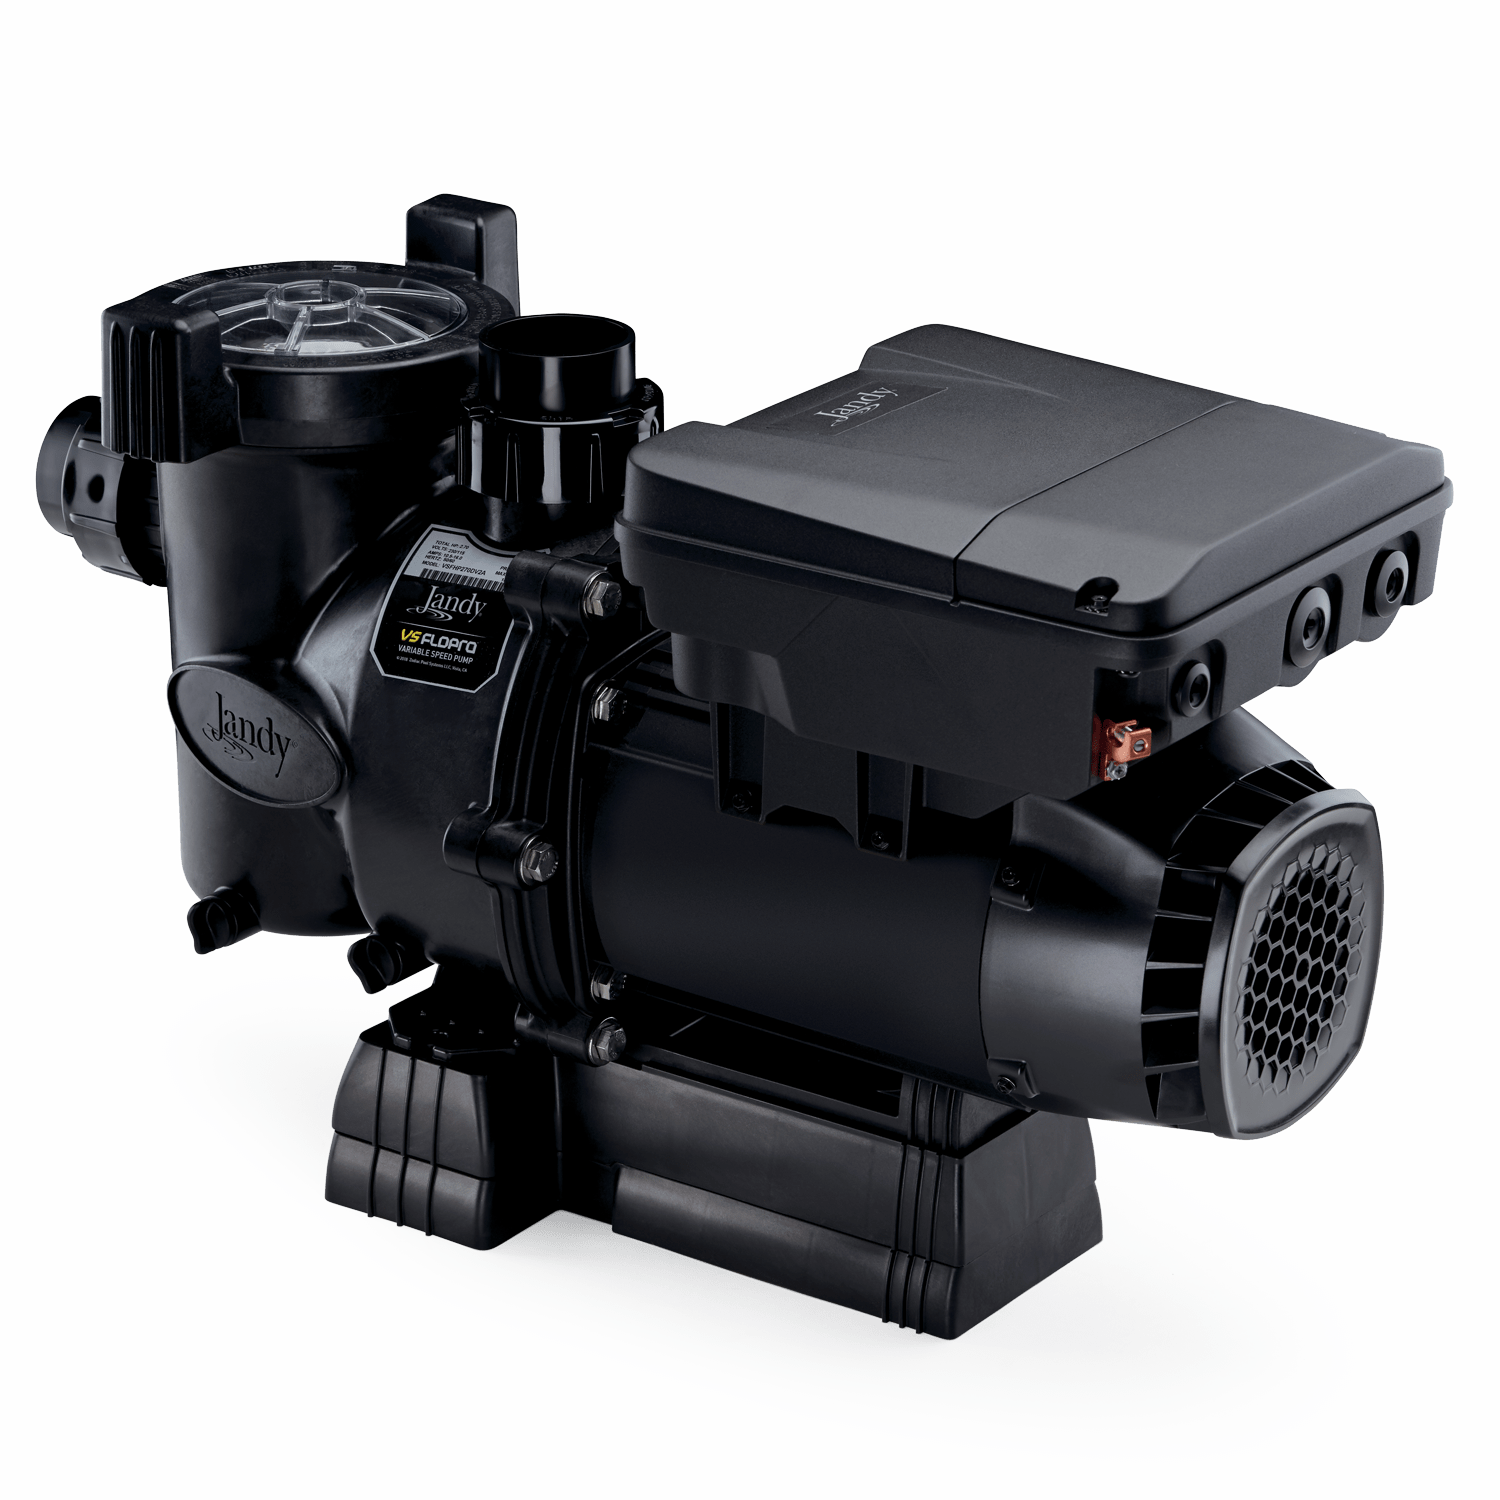 Jandy VS FloPro 1.85 HP Pump side view displaying adjustable base height